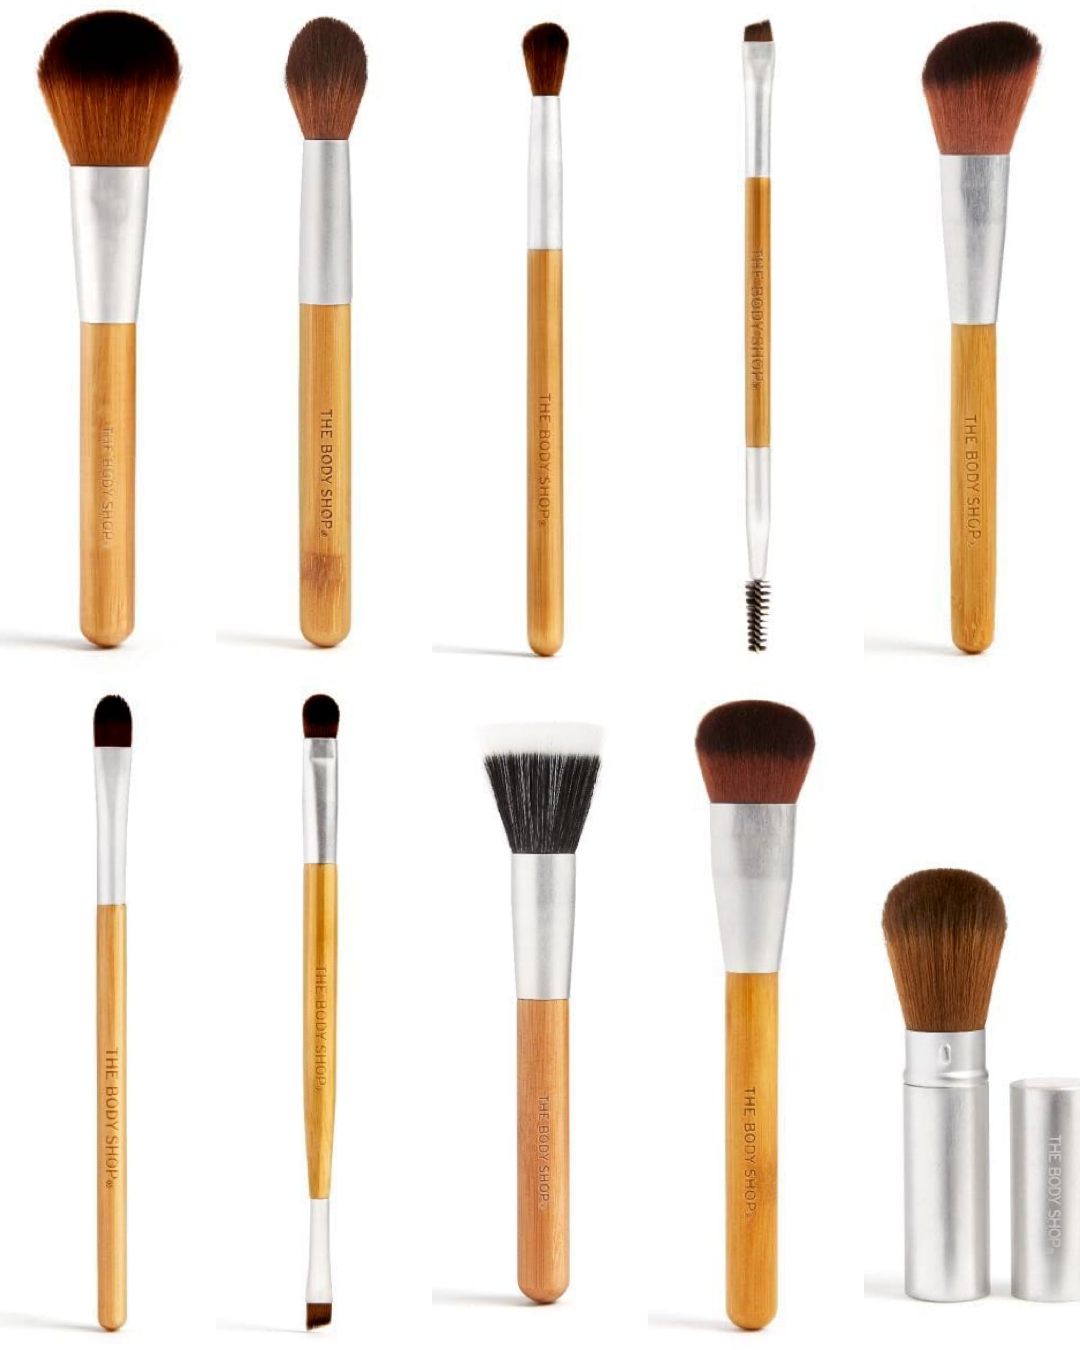 The Body Shop Bamboo Makeup Brush Collection 10 New Brushes